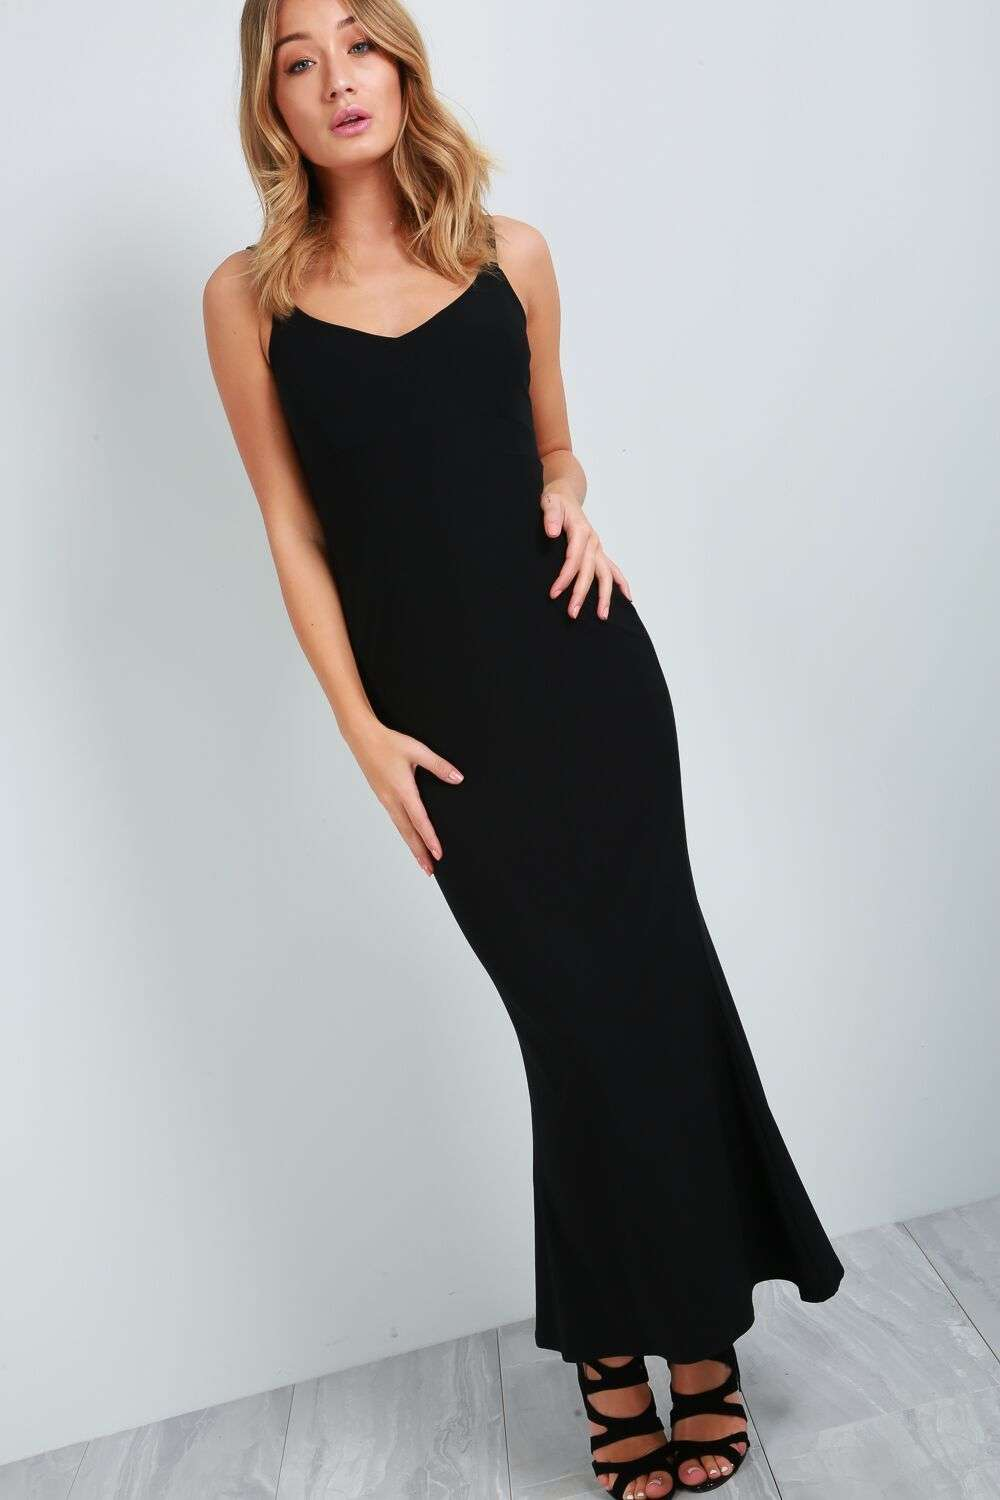 Strappy Racer Back Bodycon Fishtail Maxi Dress - bejealous-com